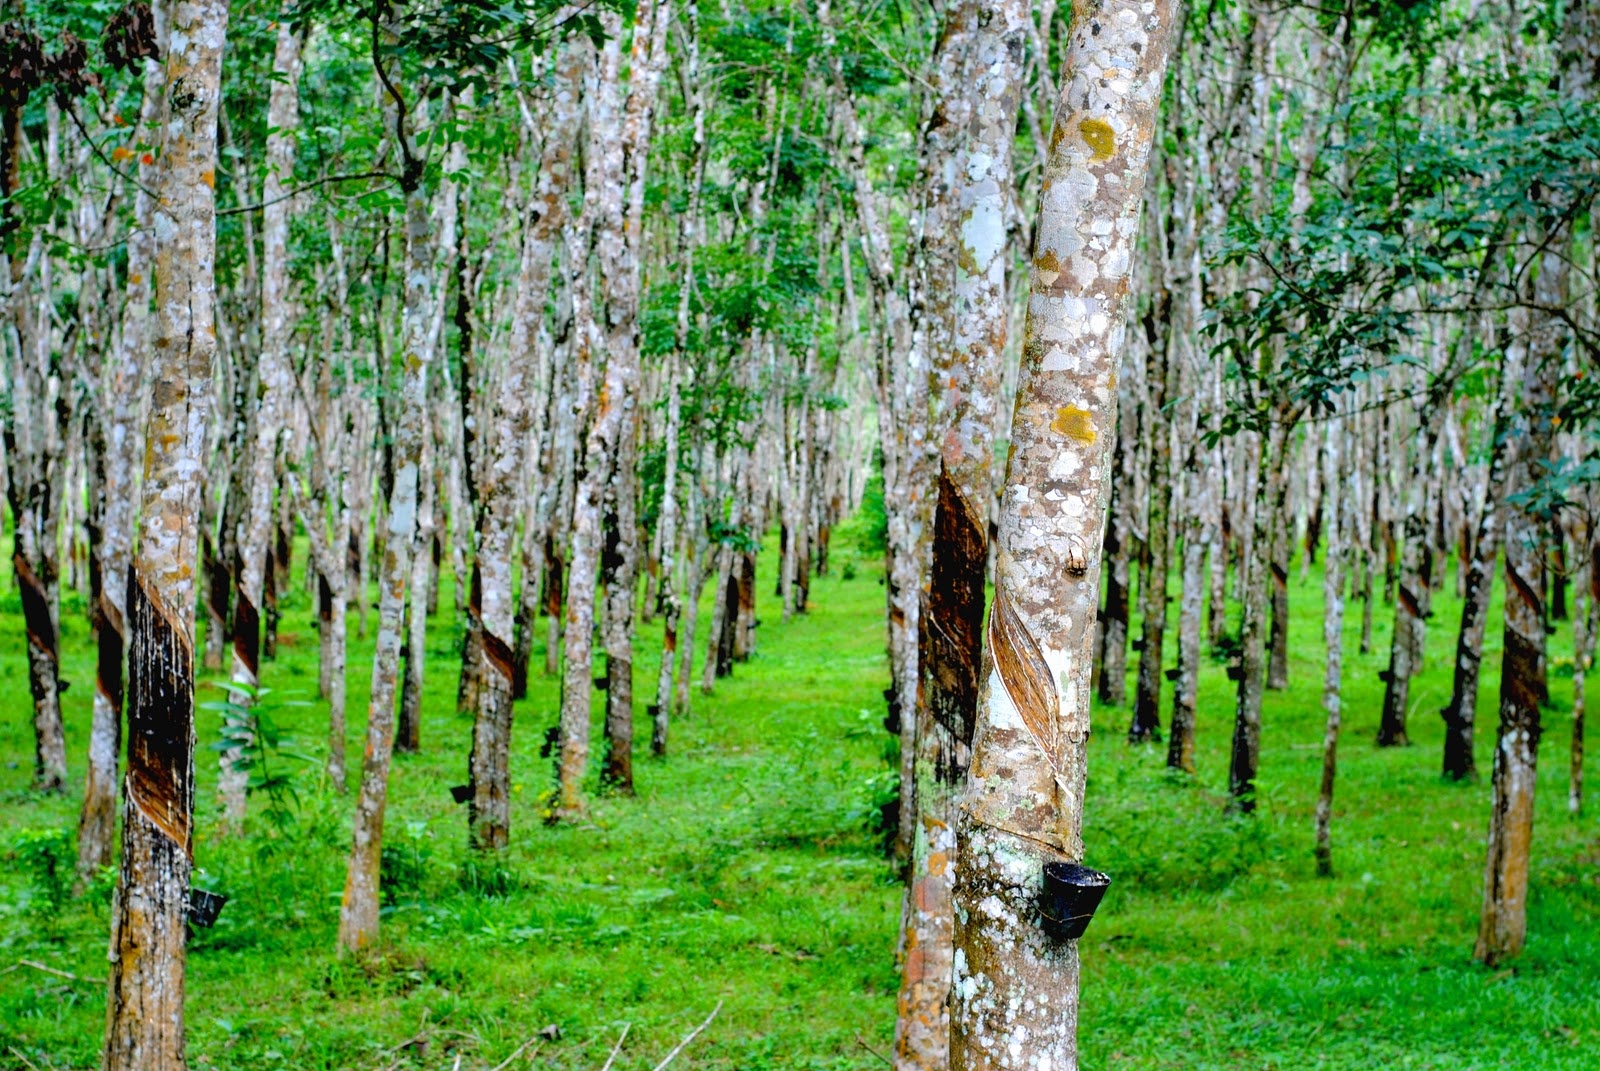 tree plantations Fast growing trees can earn thousands of dollars per acre a tree plantation timber investment can double or triple in just a few short years.